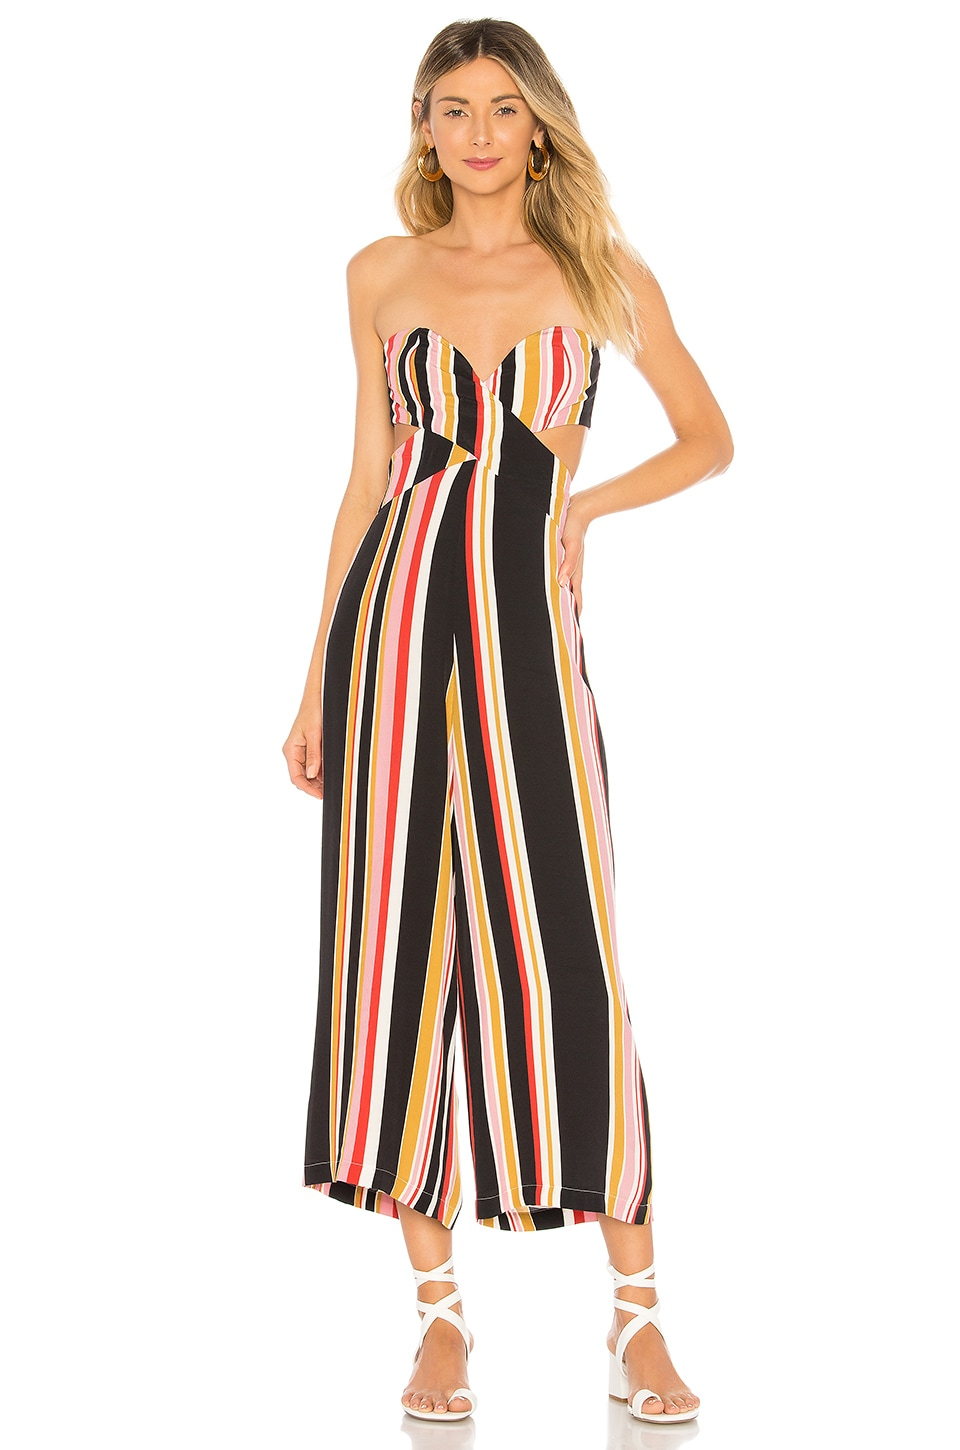 House of Harlow 1960 x REVOLVE Joelle Jumpsuit in Red Multi Stripe